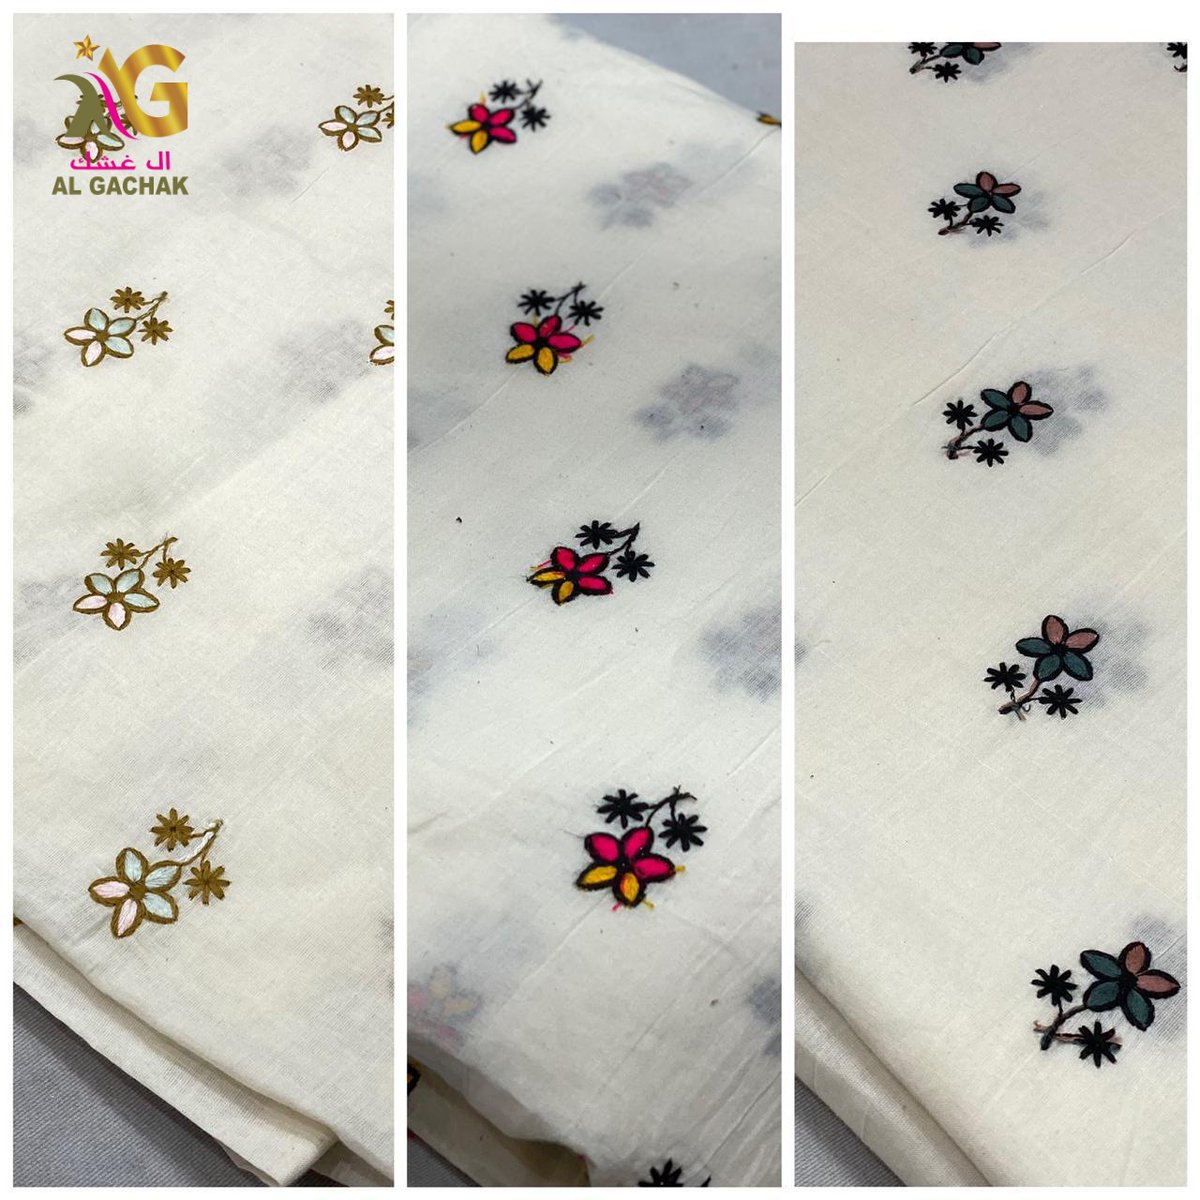 """Grab This Pure Quality #Cotton Combo Of Cotton Booti Embroidery & Cotton #Embroidery Border #Fabric 😍 Width :48"""" inch Price :Approx 3 BHD/meter(each) MOQ: 14 Meter Dealing in wholesale and for #boutique use! #l4l #F4F #Bahrain #boutiqueshopping #Like #fashiondesigner #follo https://t.co/HRzg1ZvluD"""